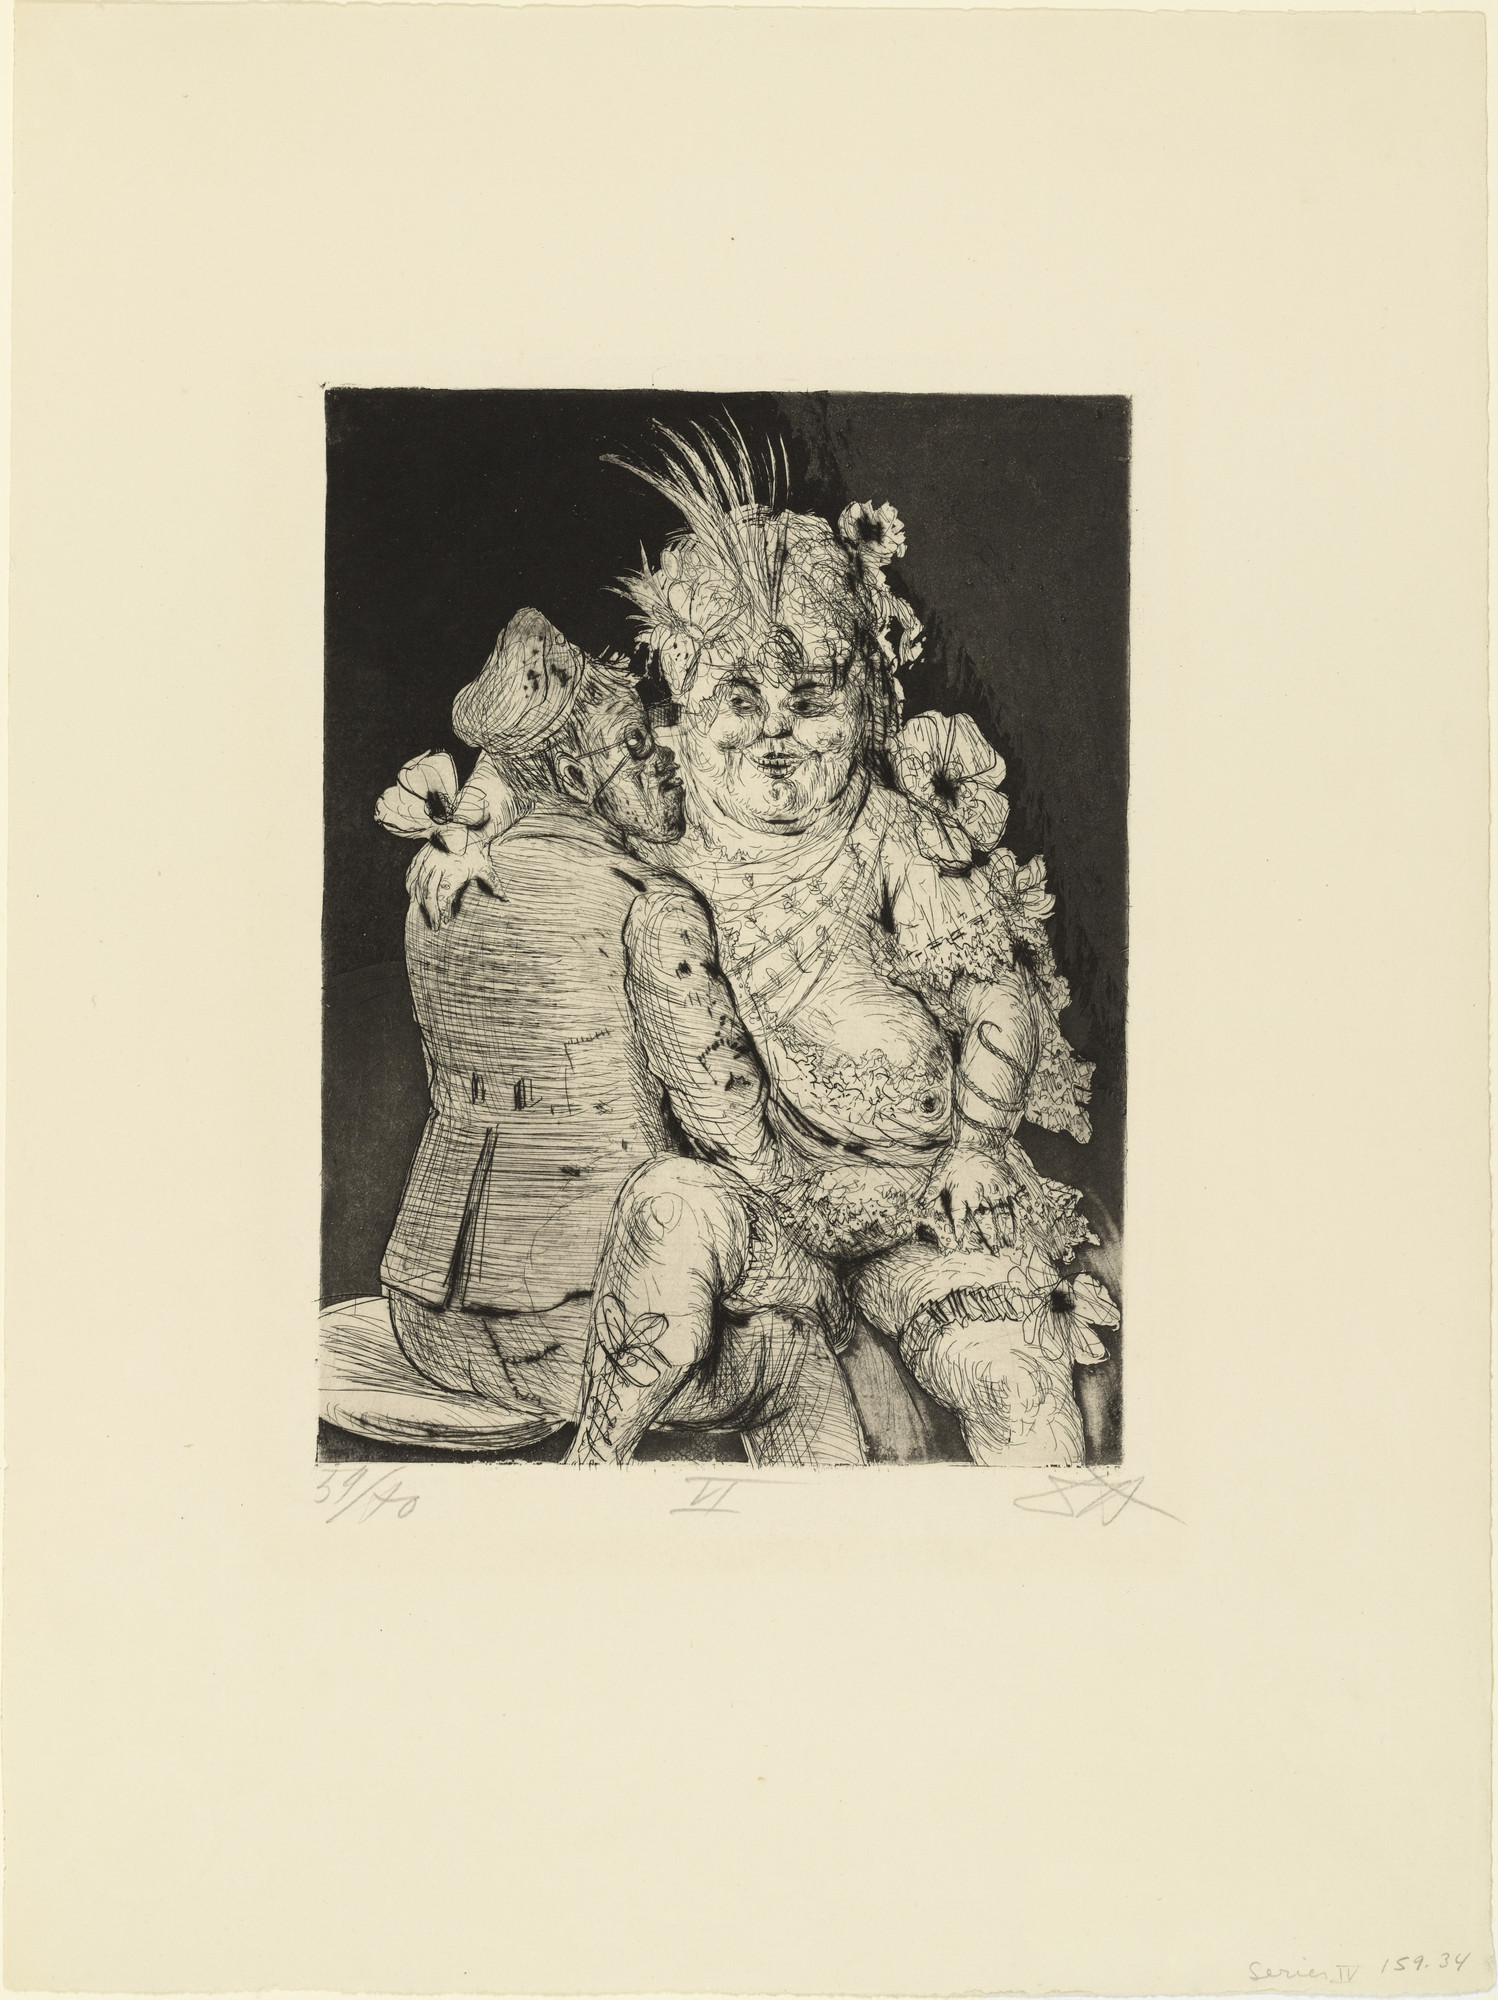 Otto Dix. Visit to Madame Germaine's in Méricourt (Besuch bei Madame Germaine in Méricourt) from The War (Der Krieg). (1924)